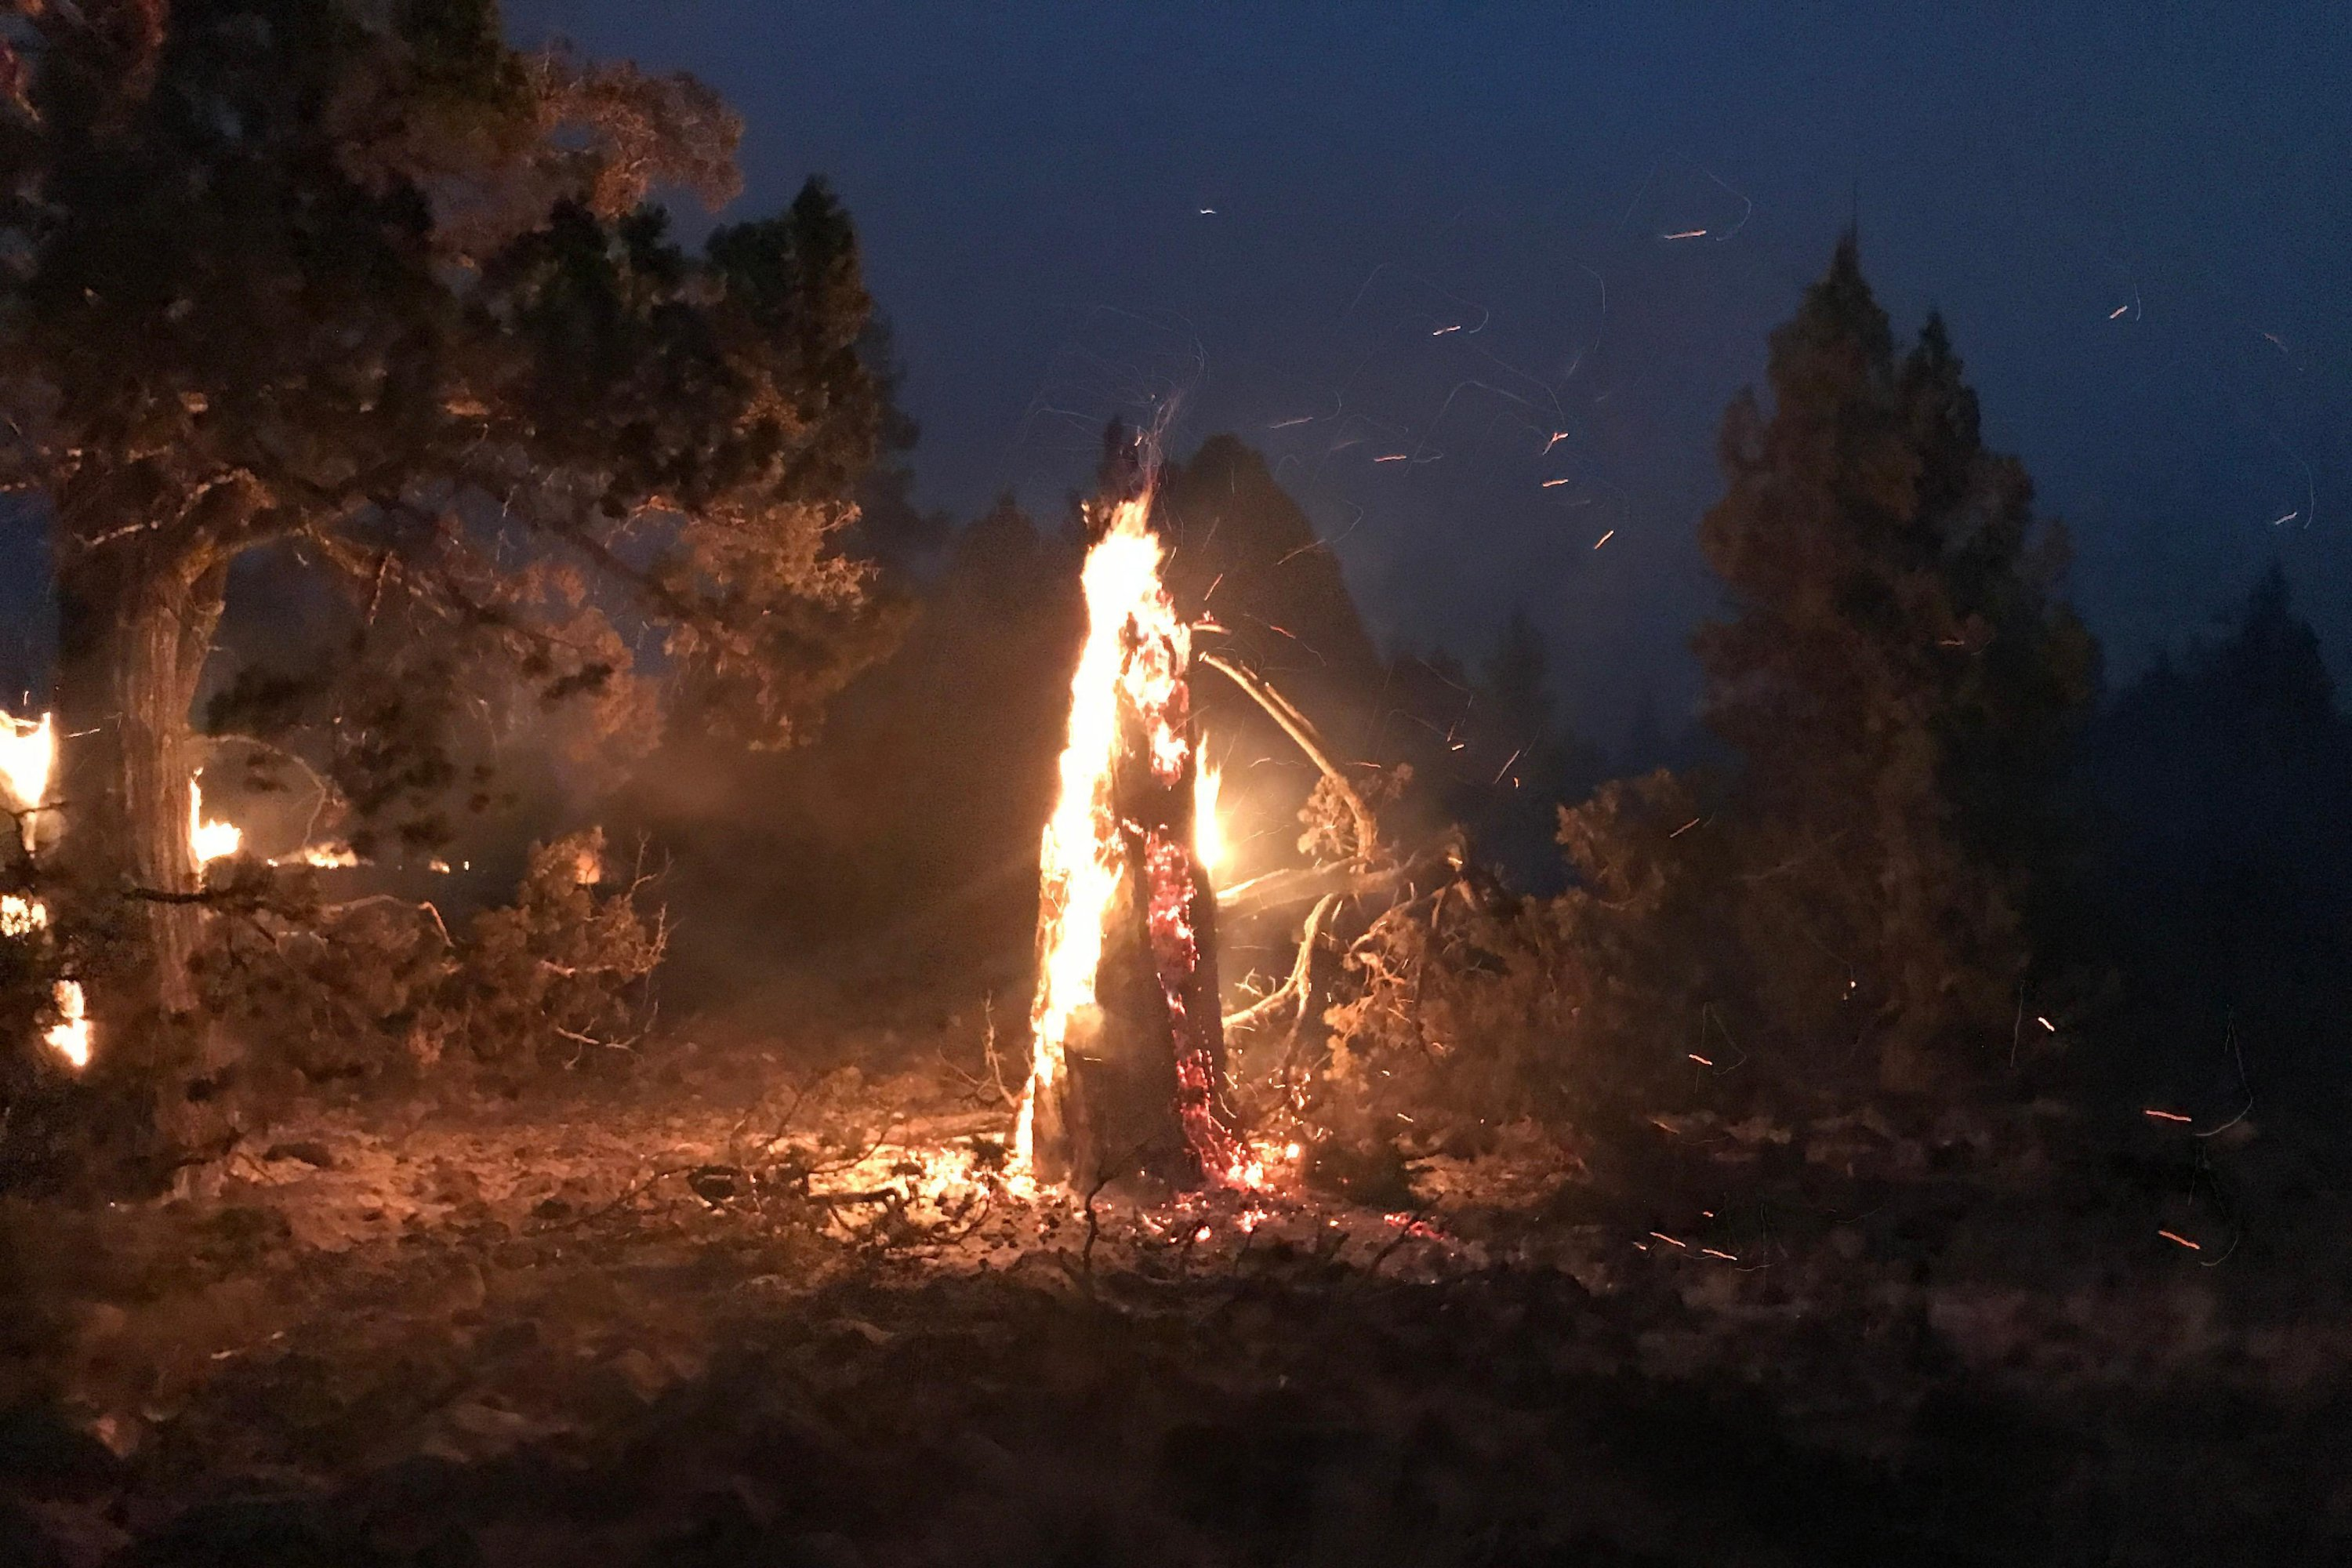 In this photo provided by the Bootleg Fire Incident Command, the Bootleg Fire burns at night near Highway 34 in southern Oregon, U.S., July 15, 2021. (AP Photo)